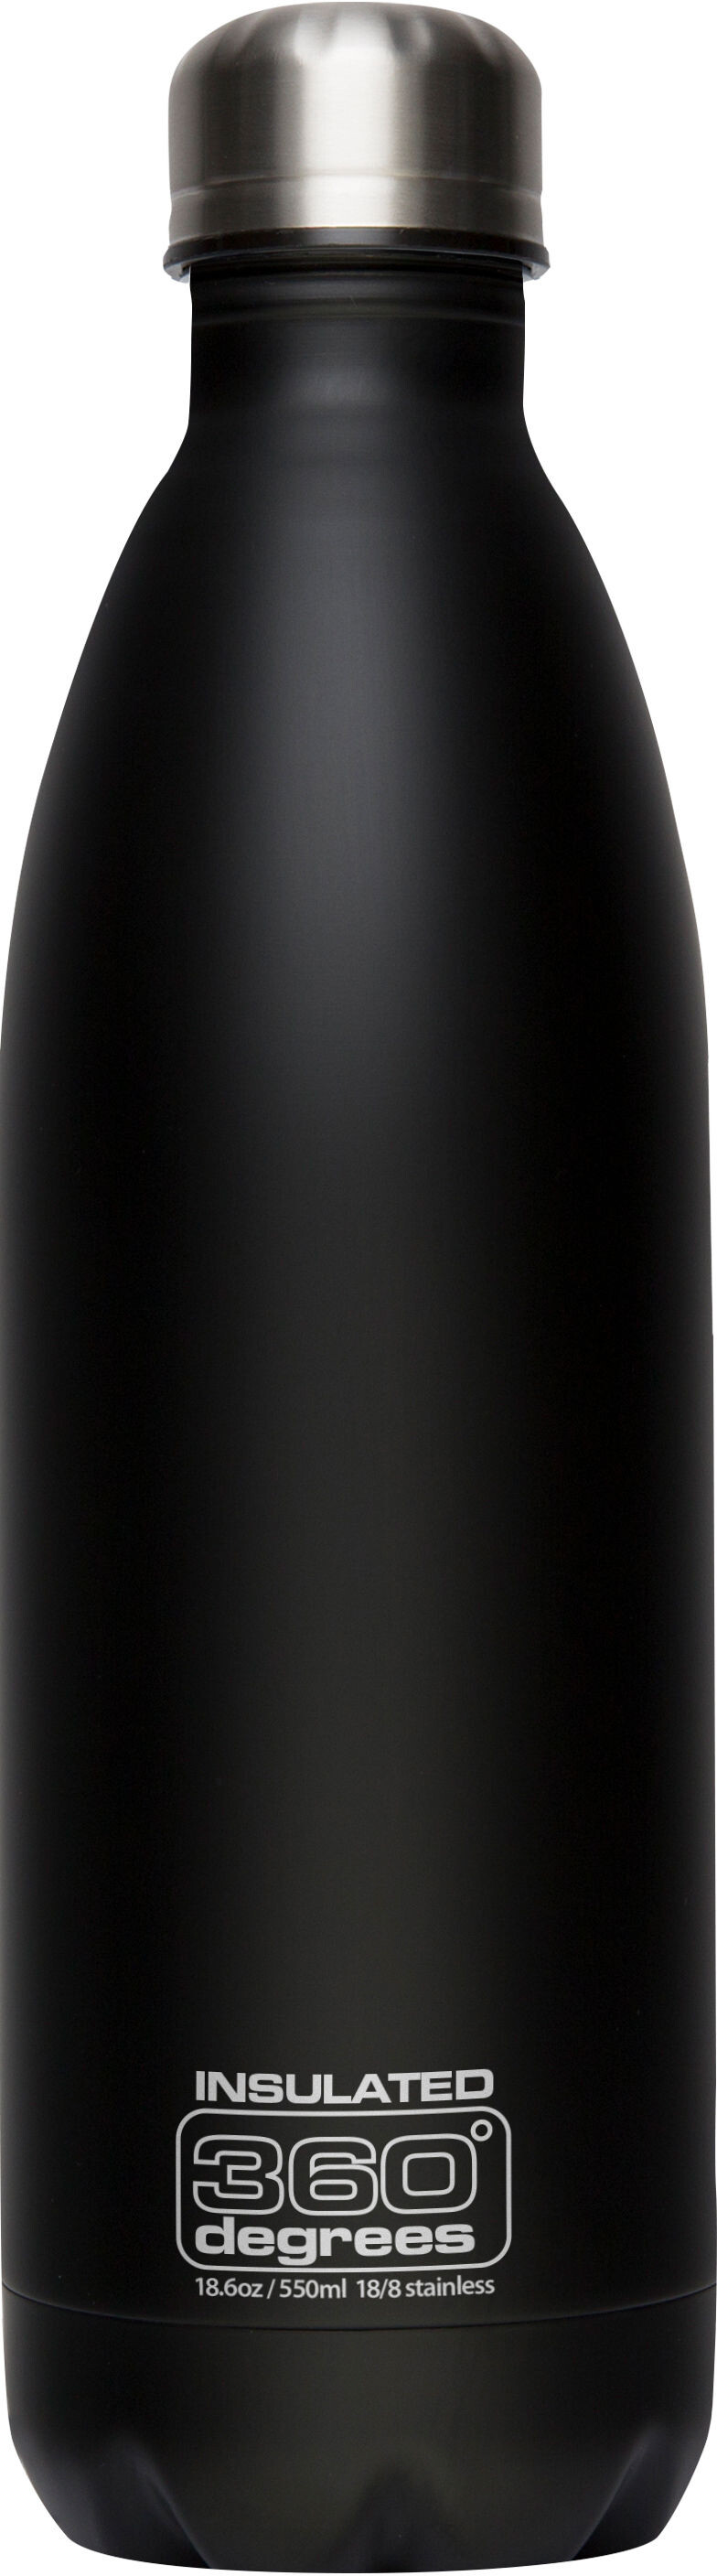 360 degrees soda insulated drink bottle 550ml black. Black Bedroom Furniture Sets. Home Design Ideas